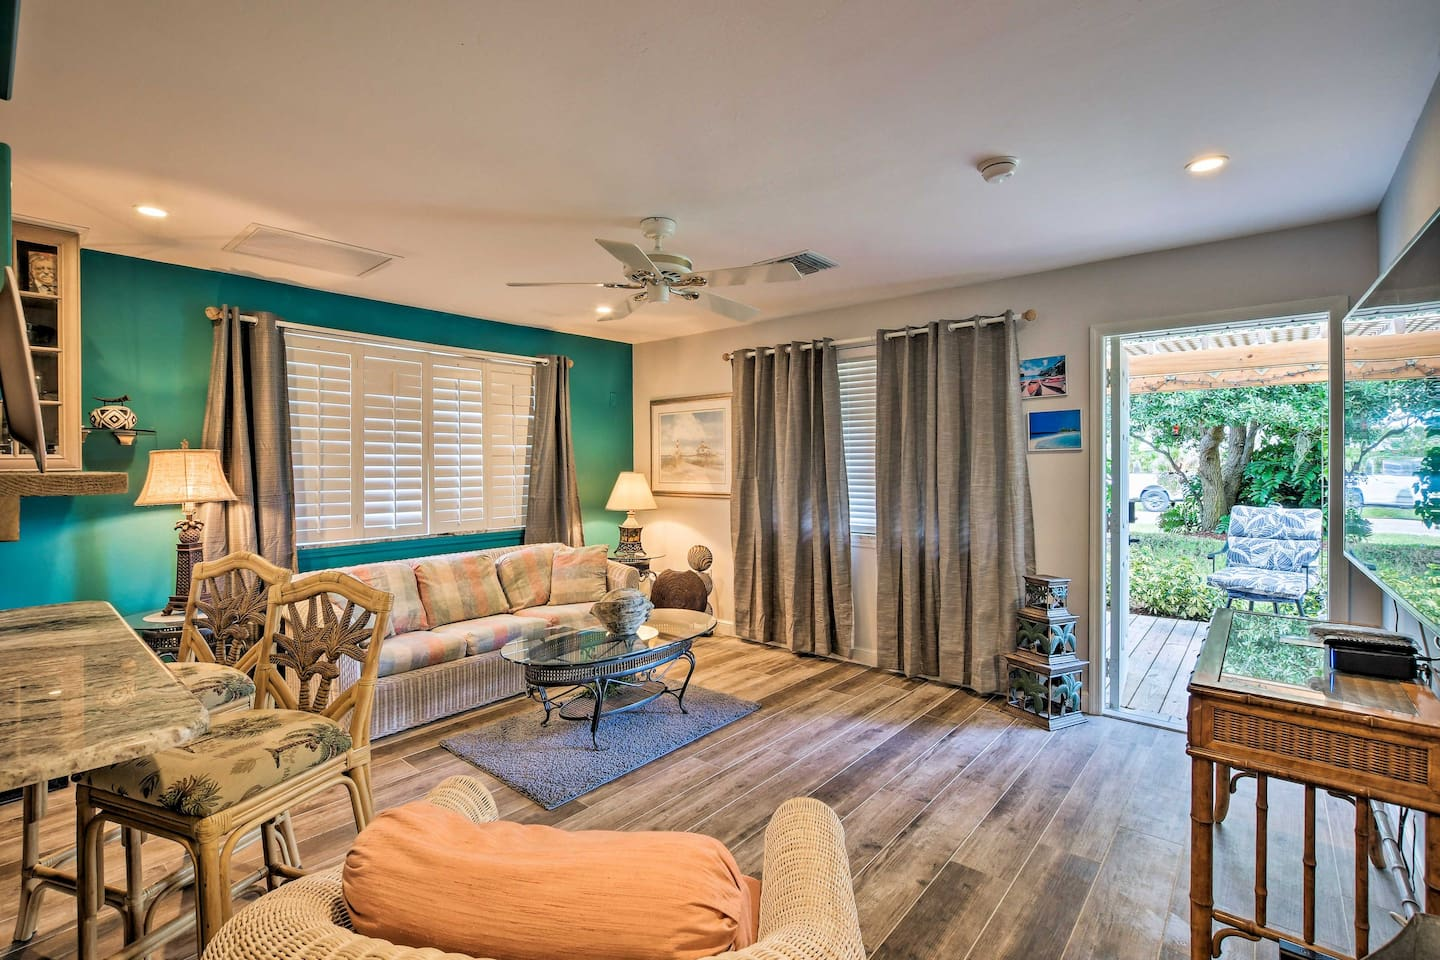 Step inside your updated Naples home-away-from-home!